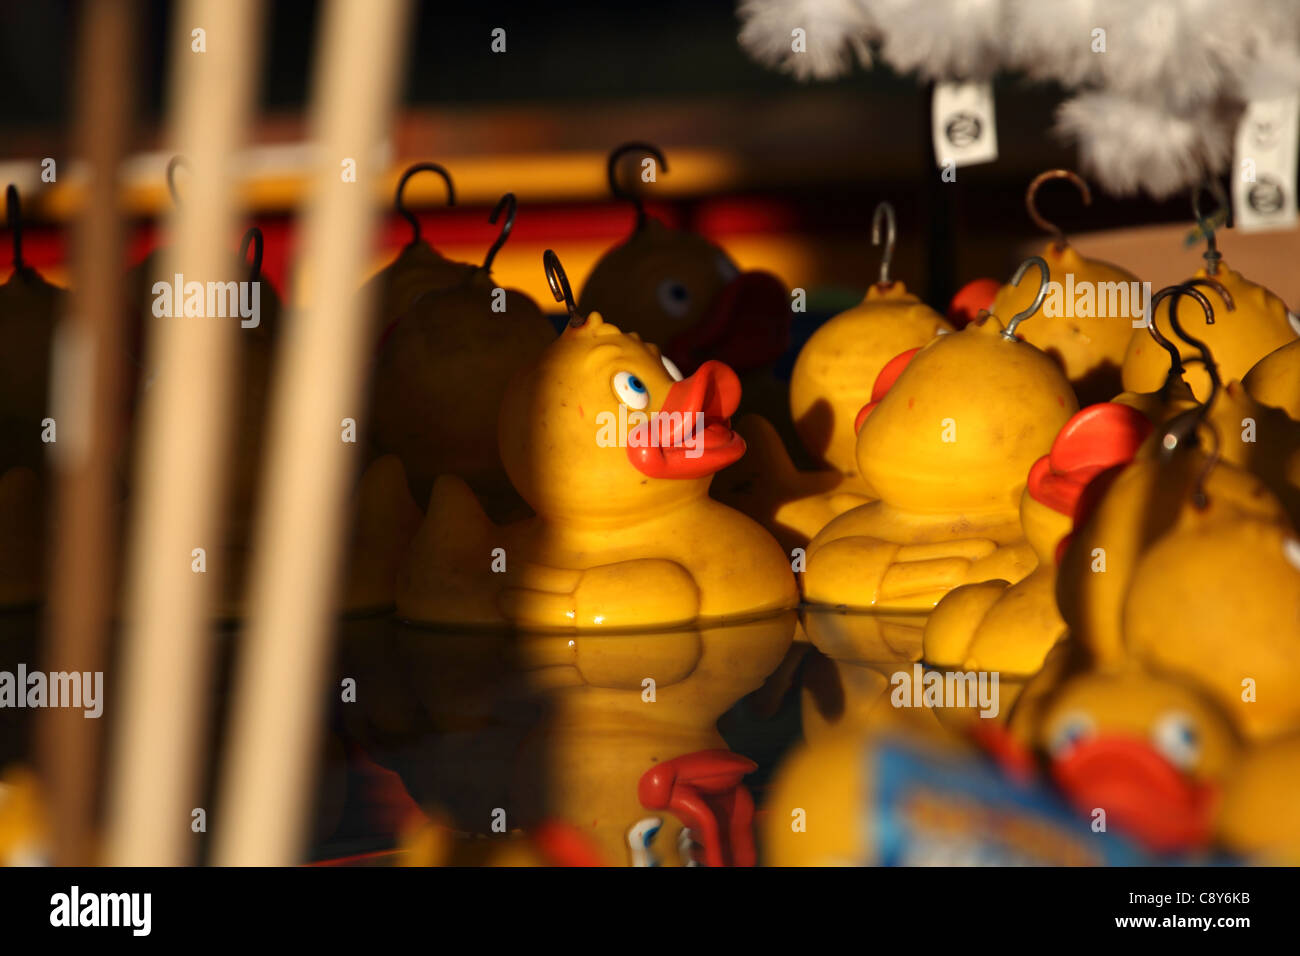 Hook A Duck Stall Stock Photos & Hook A Duck Stall Stock Images - Alamy